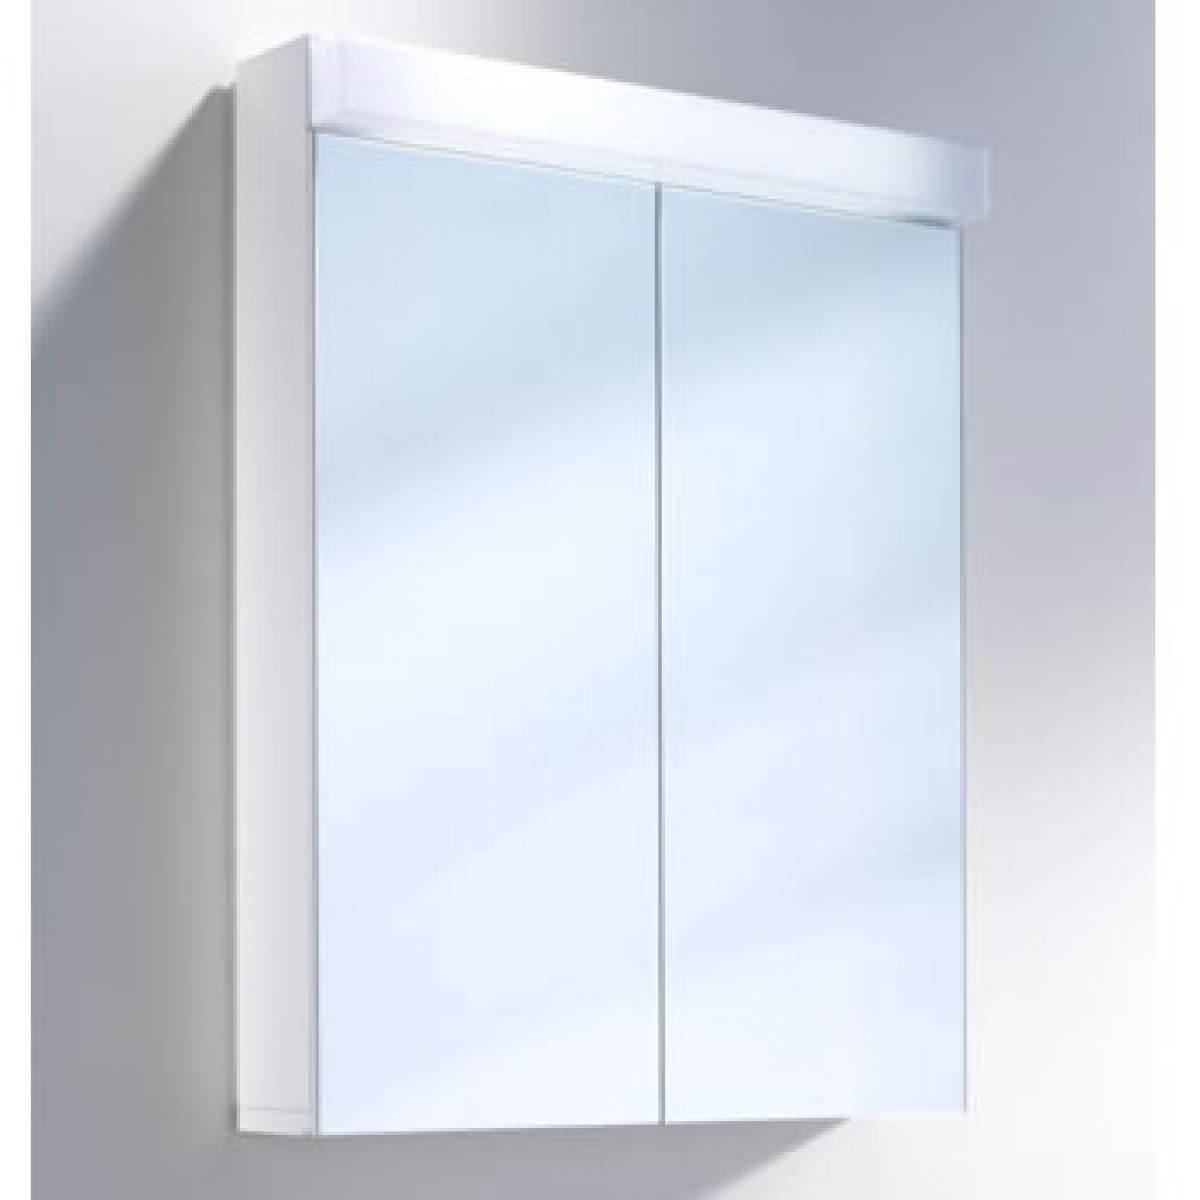 Lowline Cabinet Schneider Lowline 600mm 2 Door Mirror Cabinet With